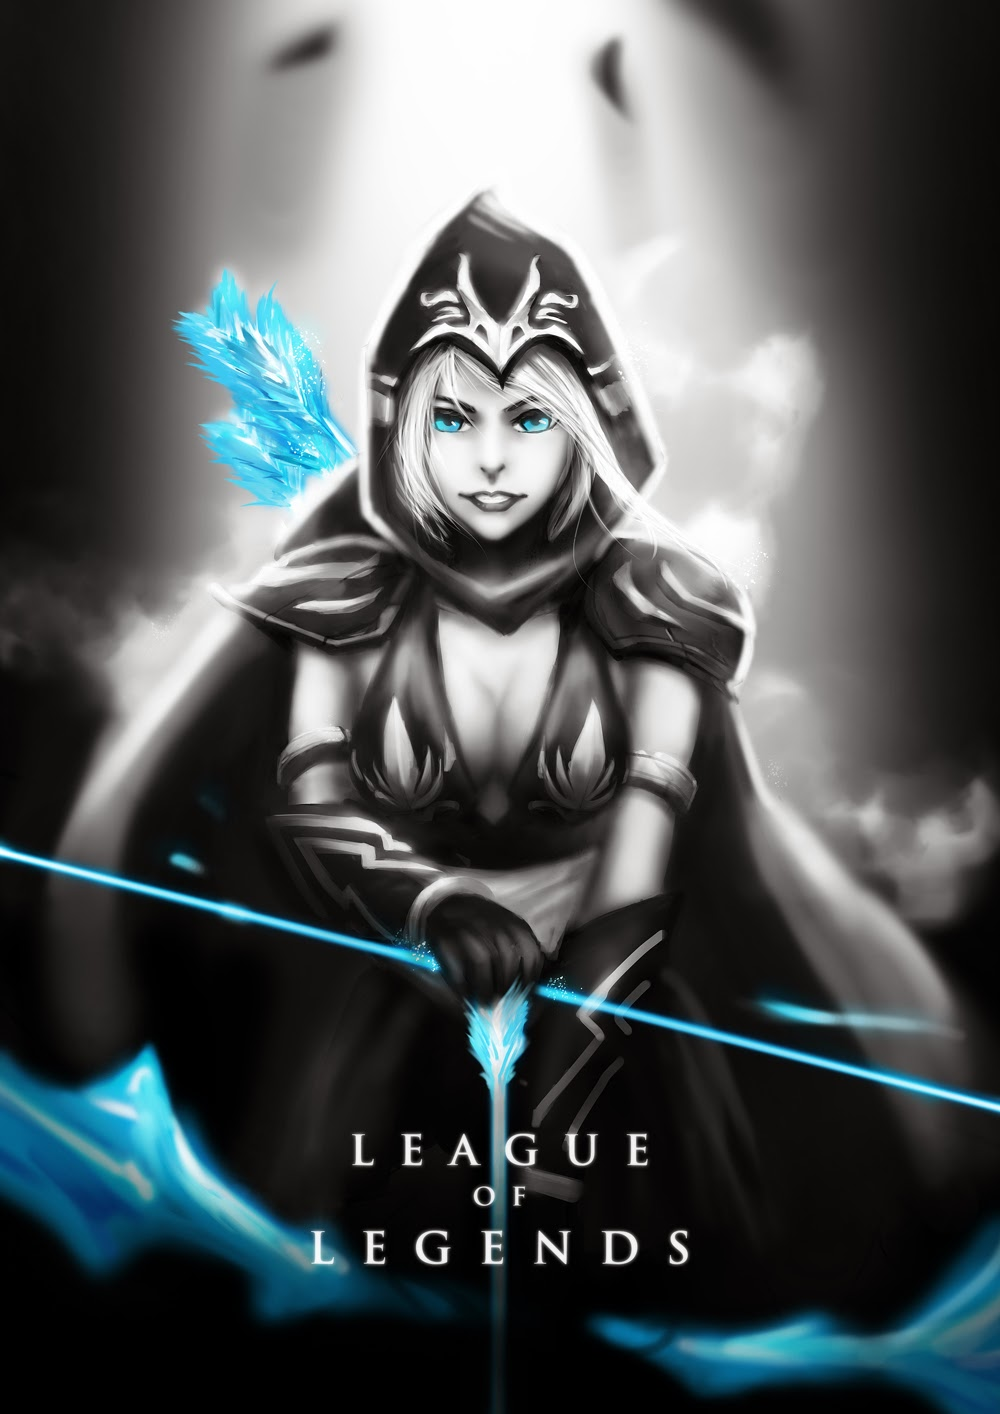 League of Legends wallpaper by Wacalac on deviantART